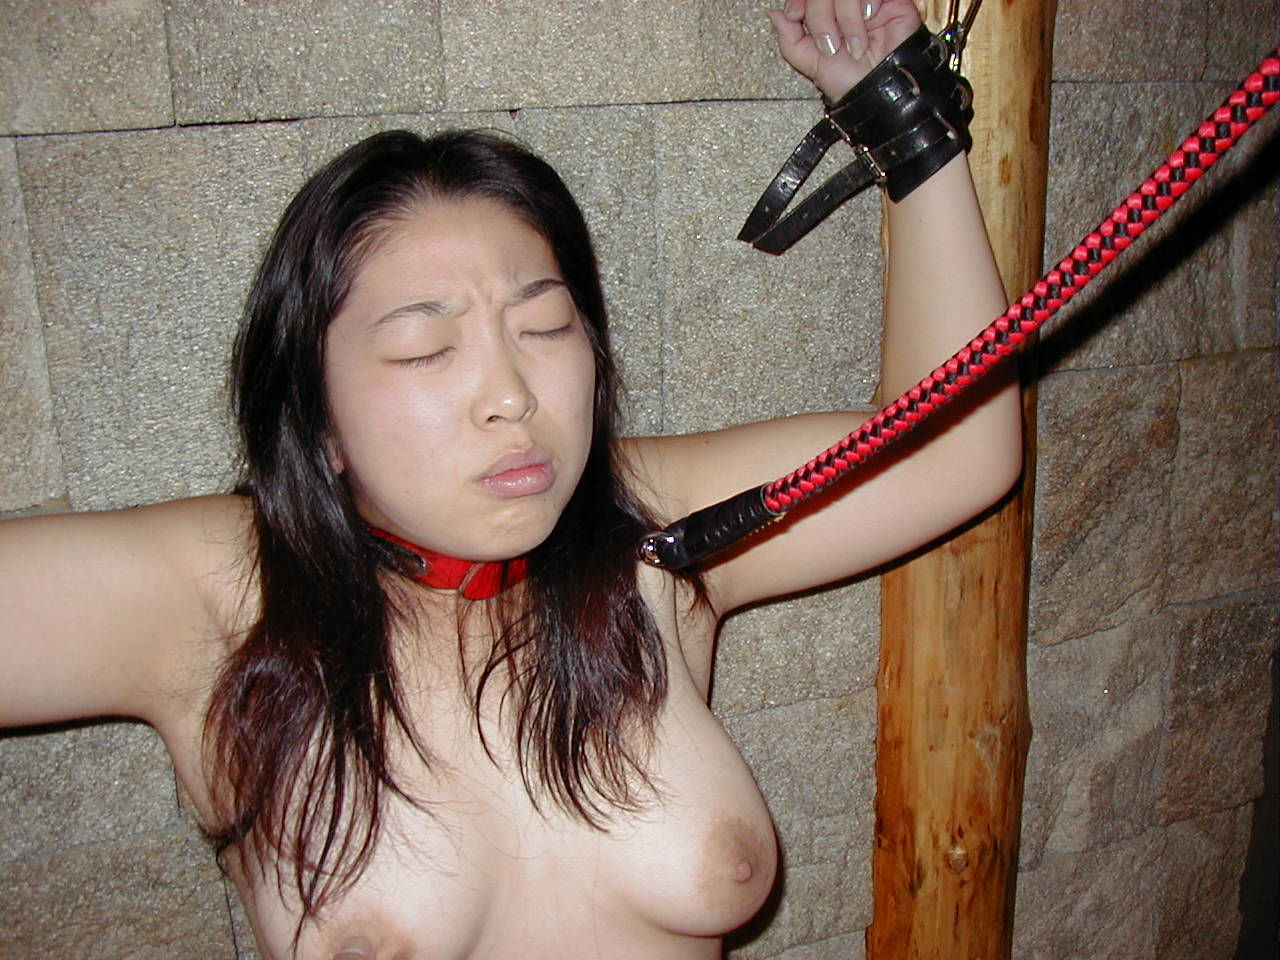 Chubby Japanese high school girls outdoor flashing and dirty sex, SM photos leaked